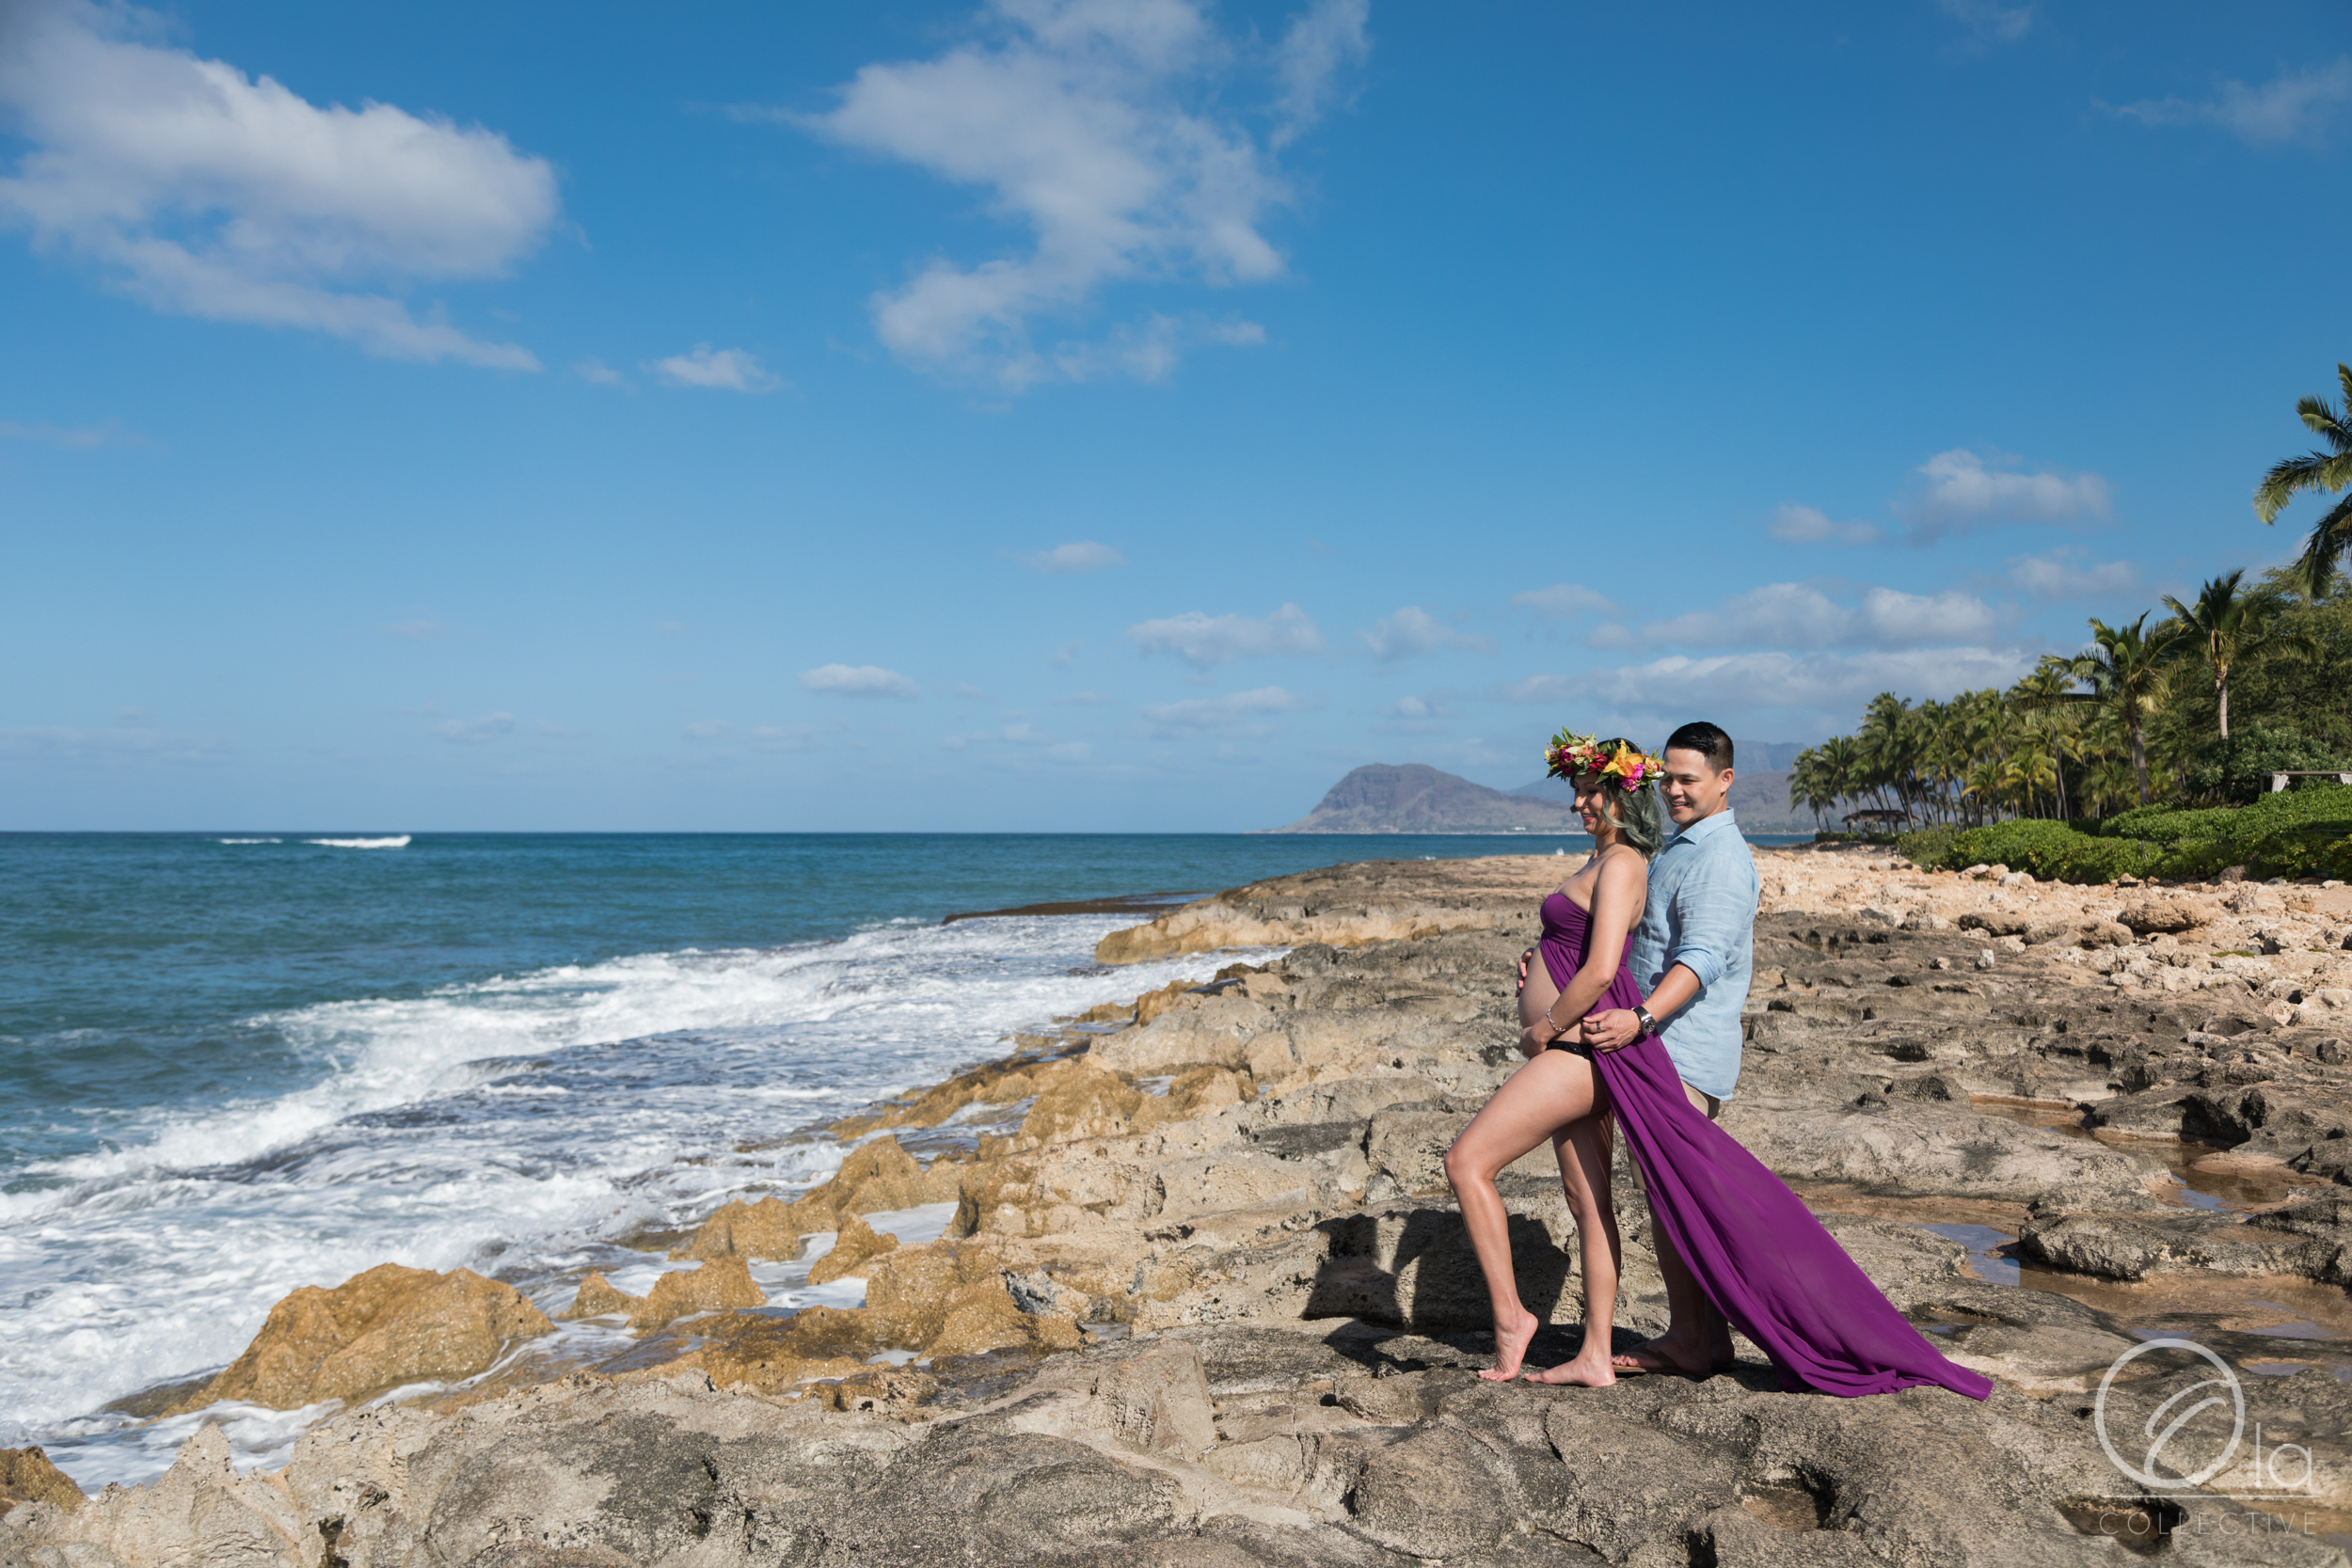 Do you prefer a photoshoot on a bright, sunny morning in Hawaii?